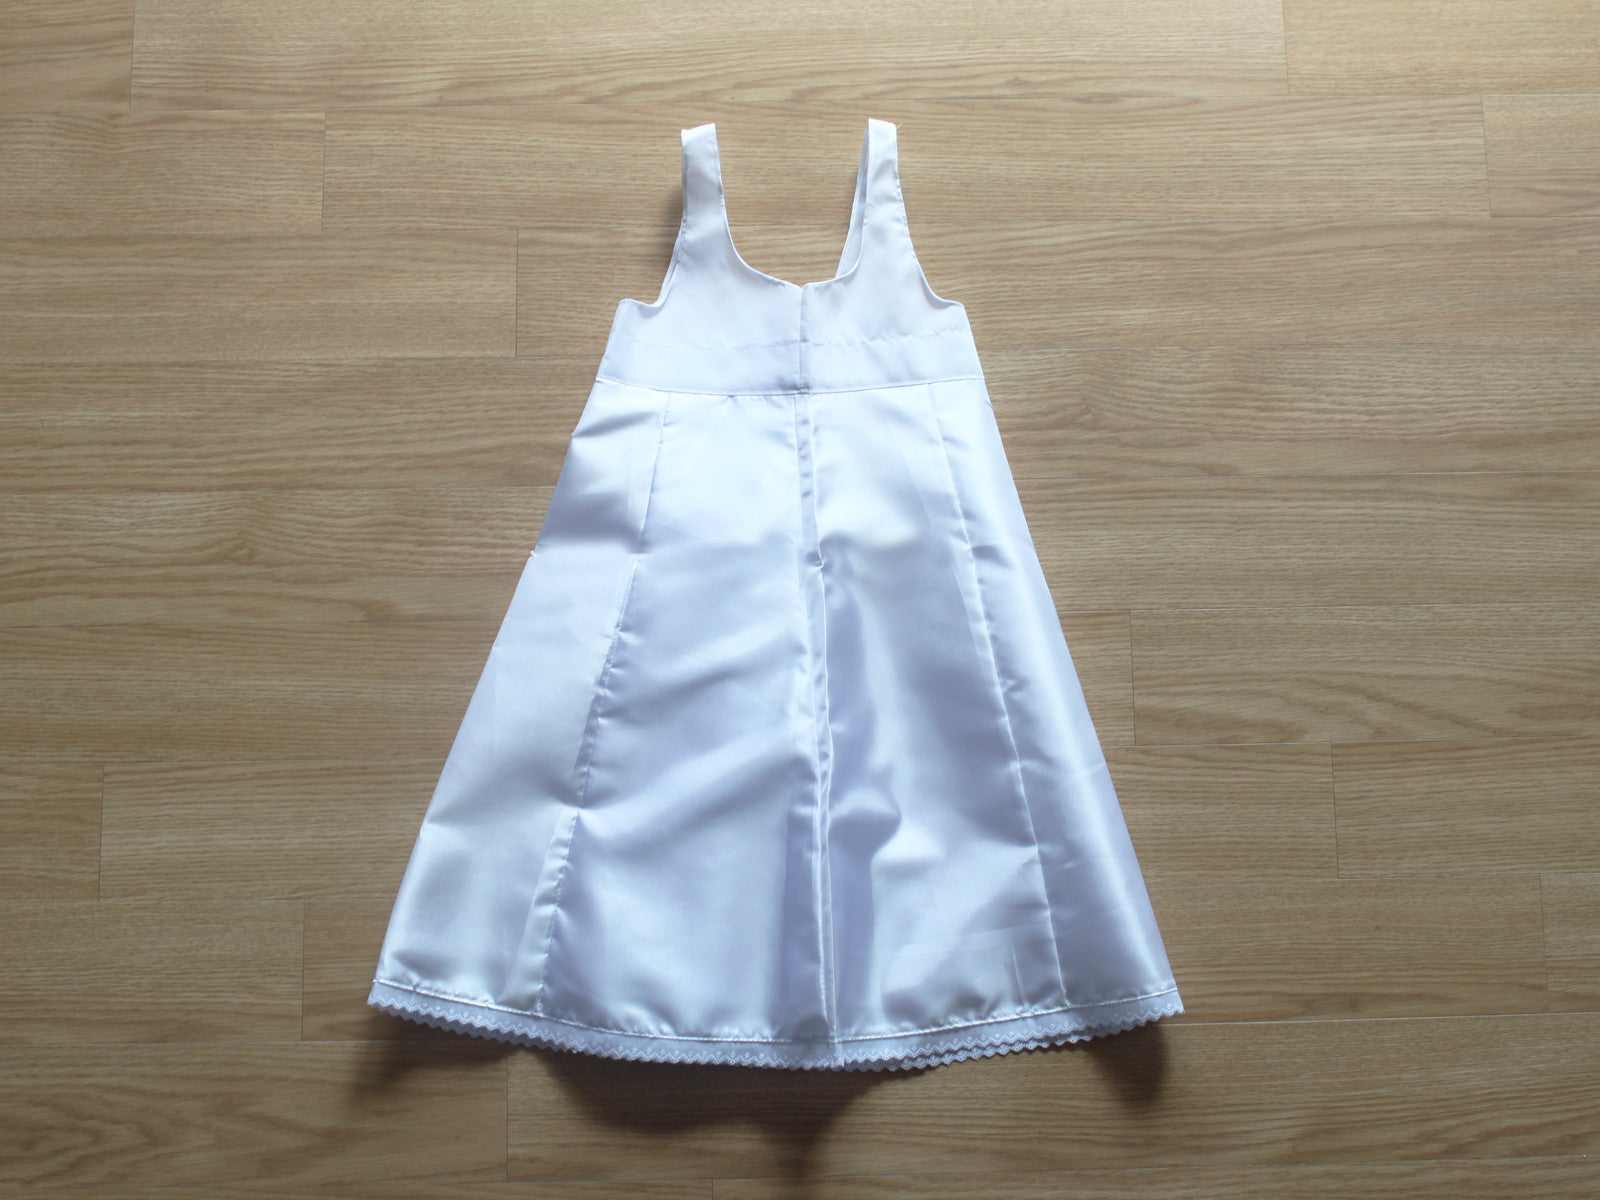 Hanbok Sokchima (Girl's Dress Slip)